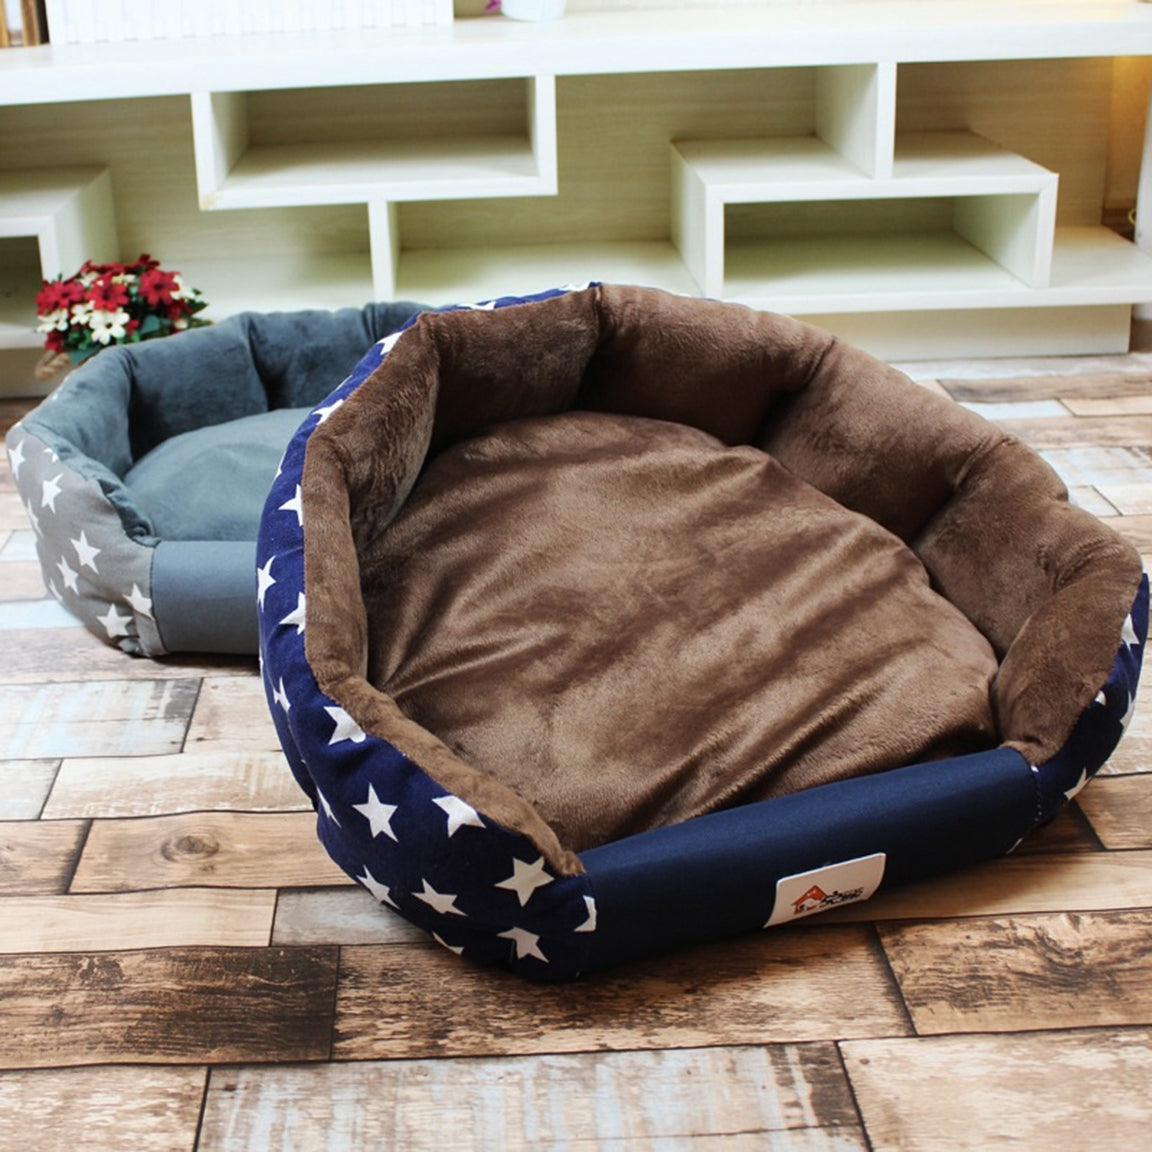 Waterproof Large Camping Bed for Dogs